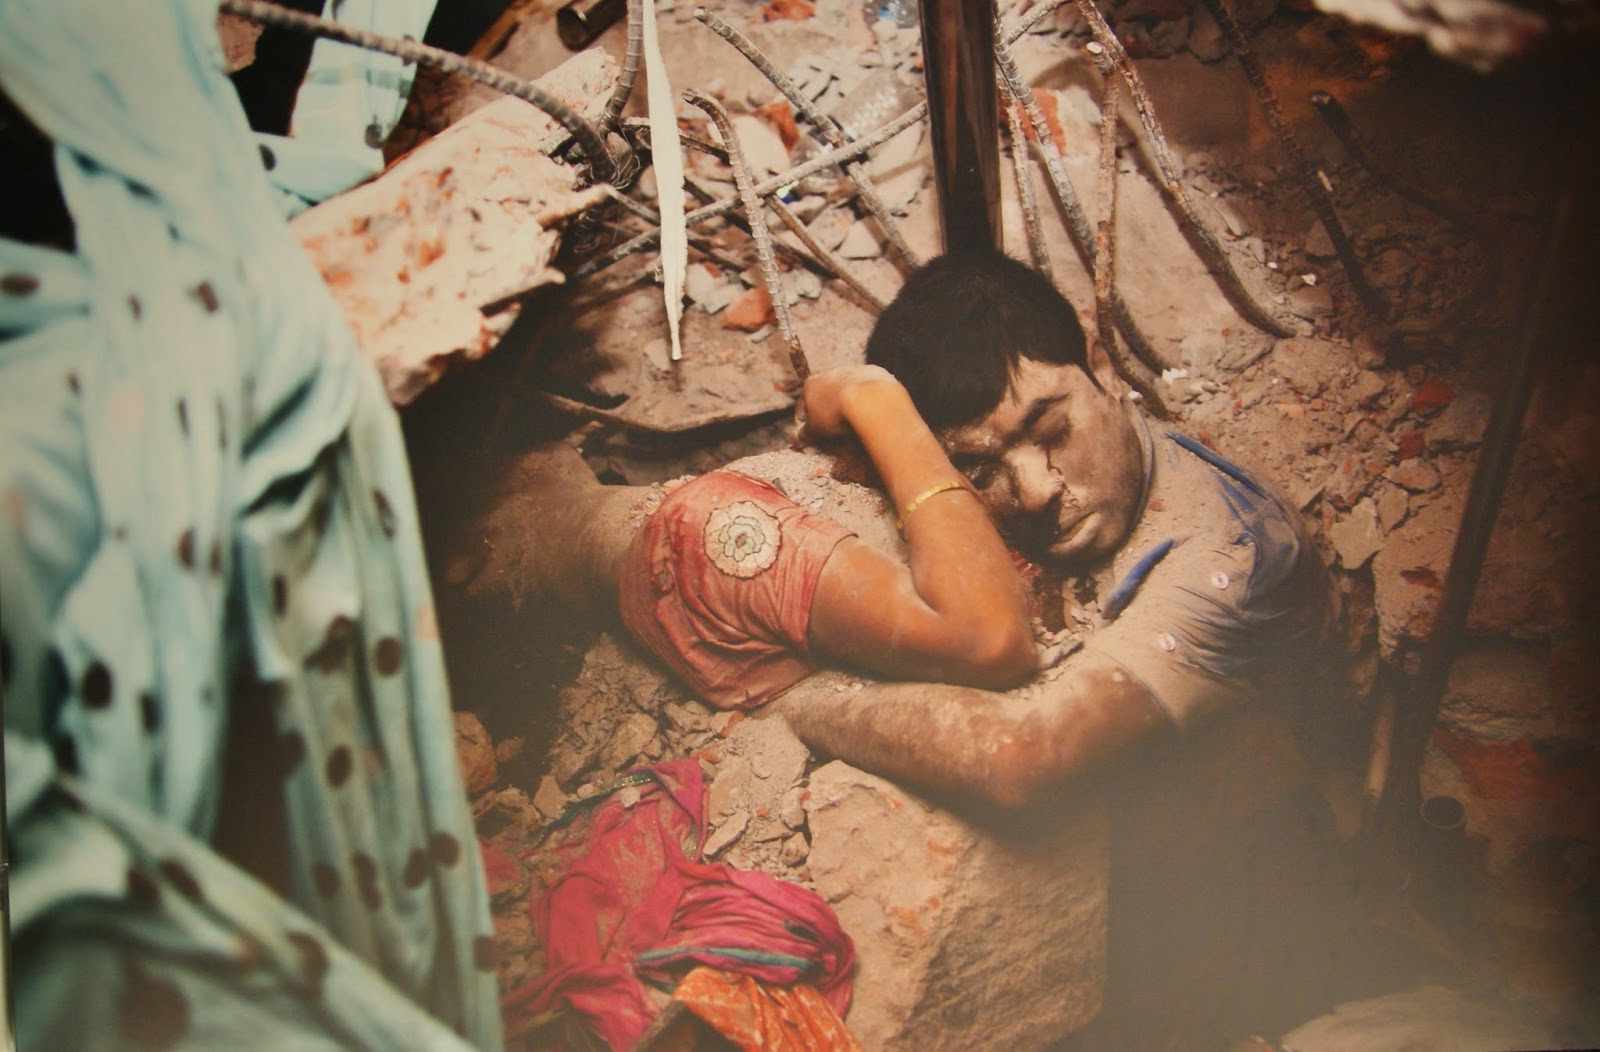 World Press Photo Contest Exhibit in Toronto, Photography, Art, Artmatters, culture, global, ontario, canada, the purple scarf, melanieps, brookfield place, allan lambert galleria, third prize, spot news singles, taslima akhter, bangladesh, building, collapse, rana plaza, savar, victims